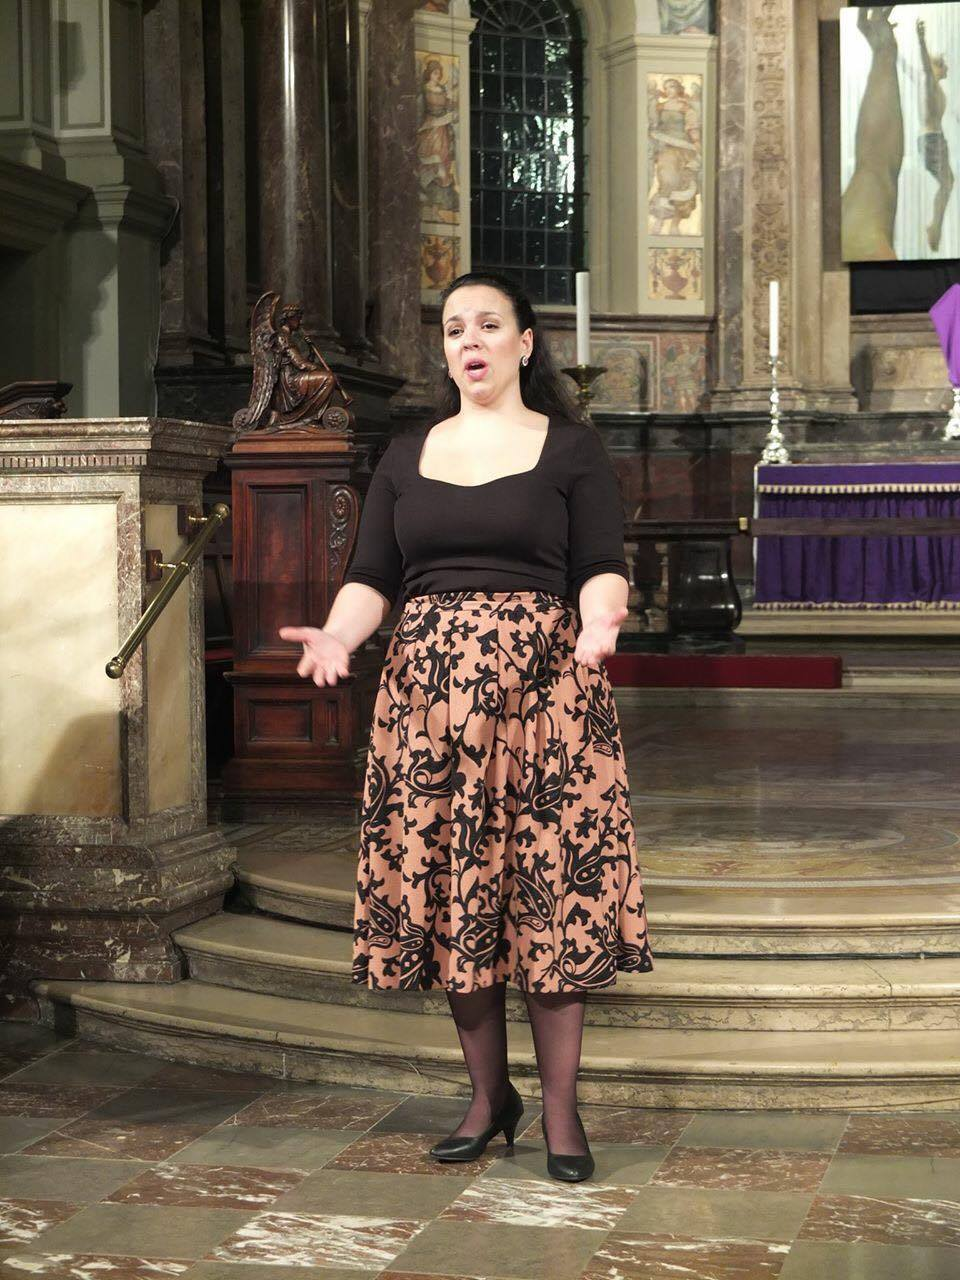 Song in the City - Brazilian and Portuguese music, St. Marylebone Parish Church, London, 2016